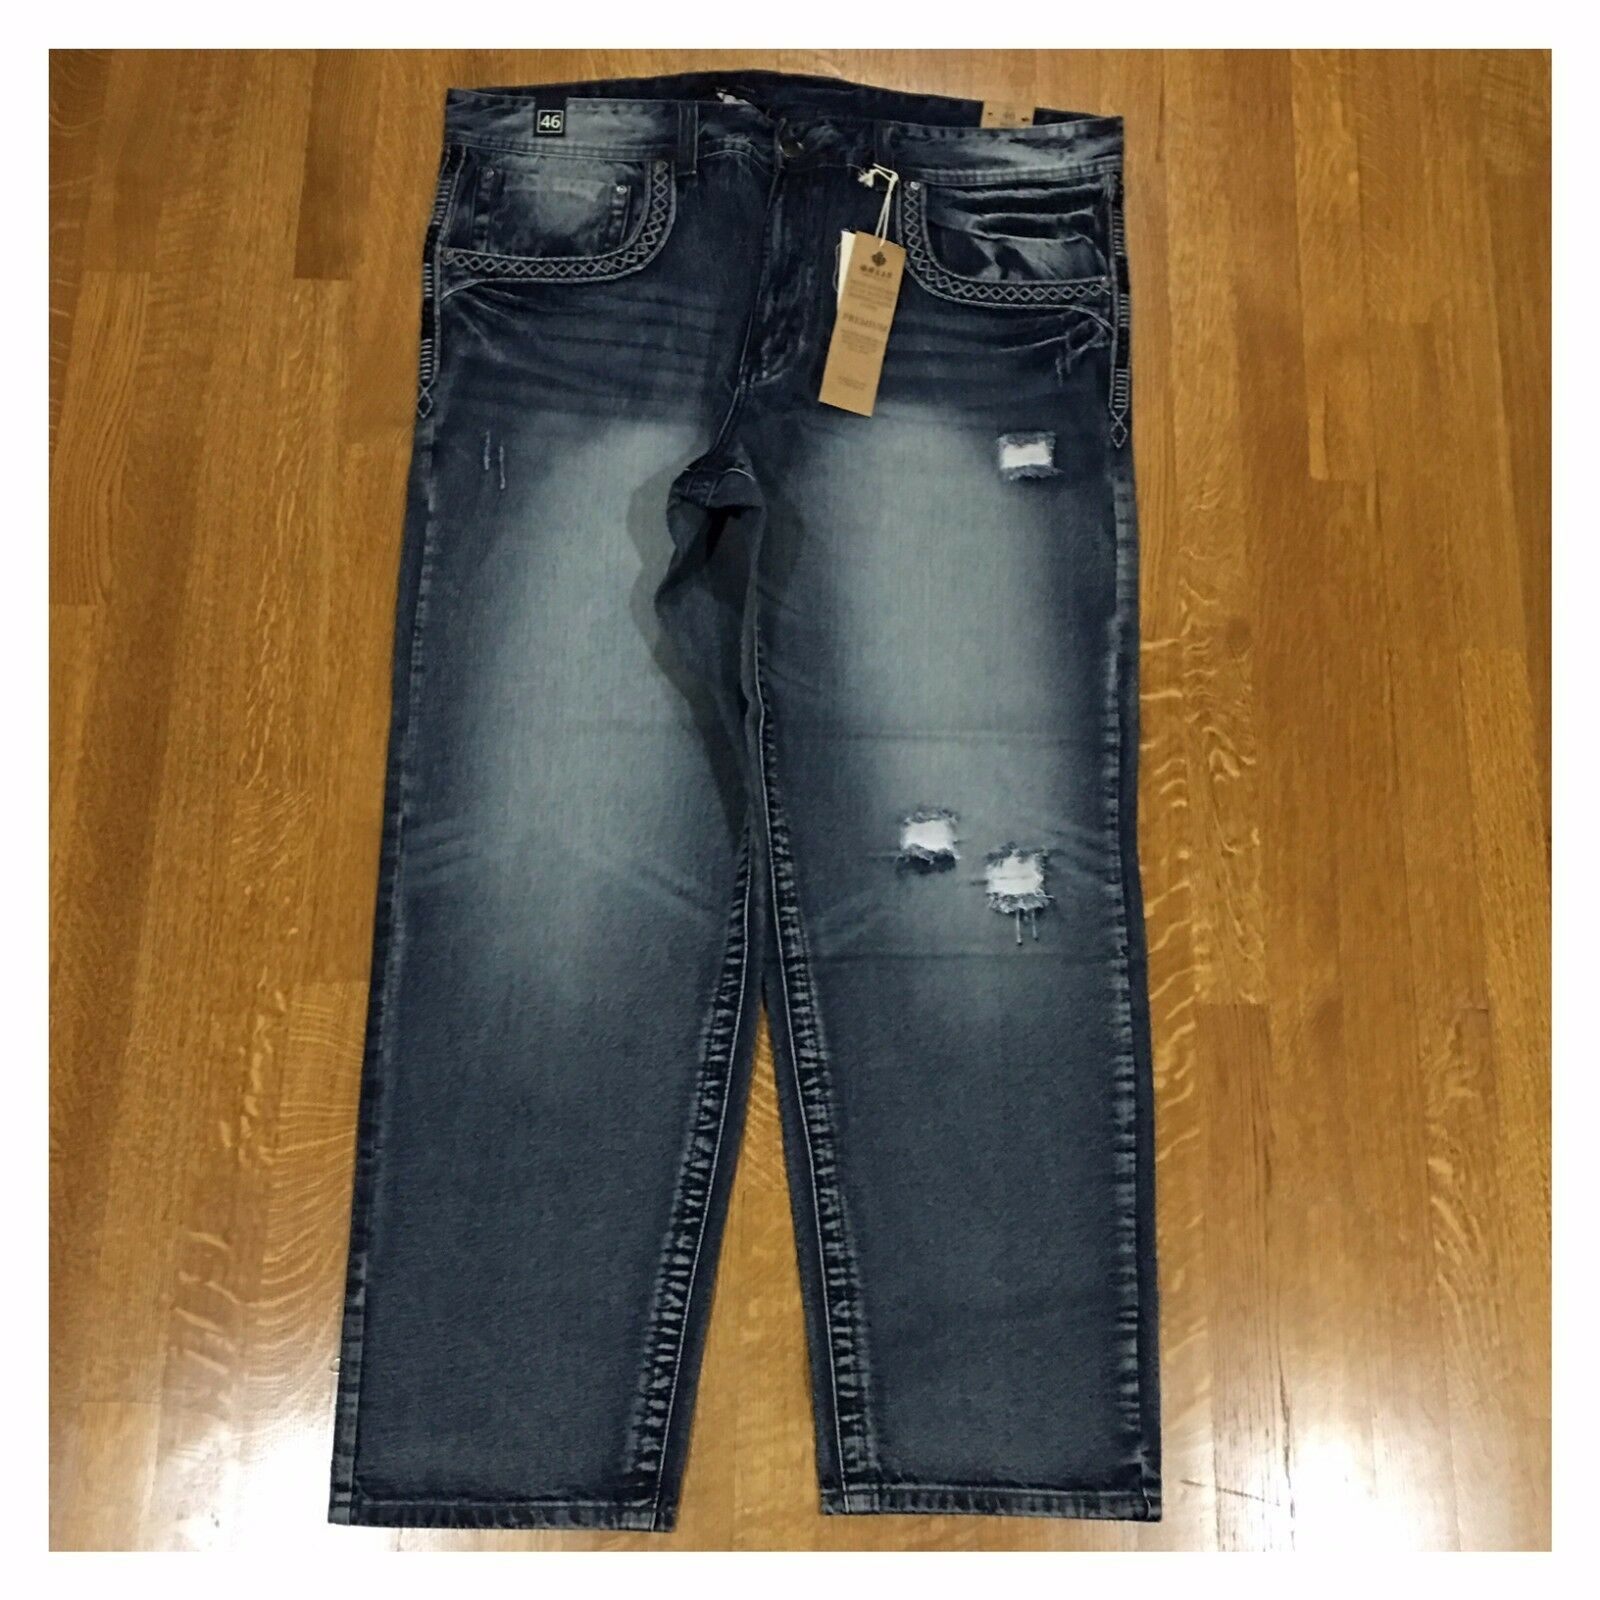 e549a57b730 New Big and Tall Mens Size 46 Fashion Denim Moto Rips Acid Bleached Jeans  Pants 아이템 넘버  112472476676.